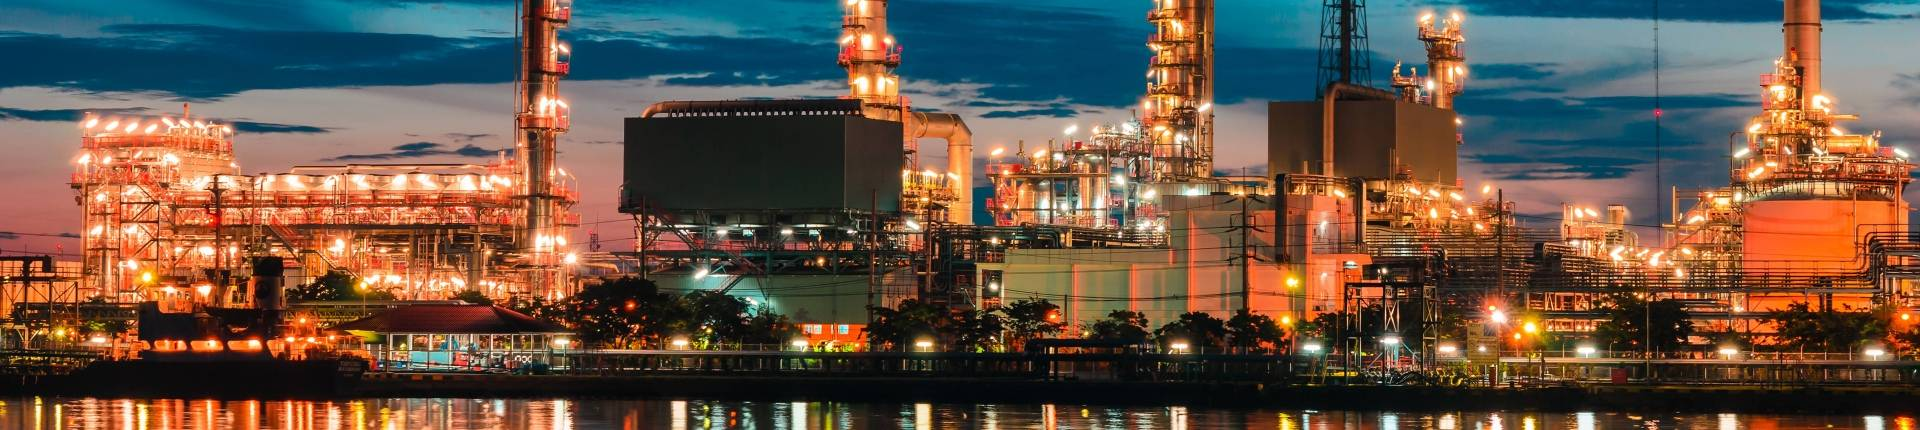 Oil, gas and petrochemistry